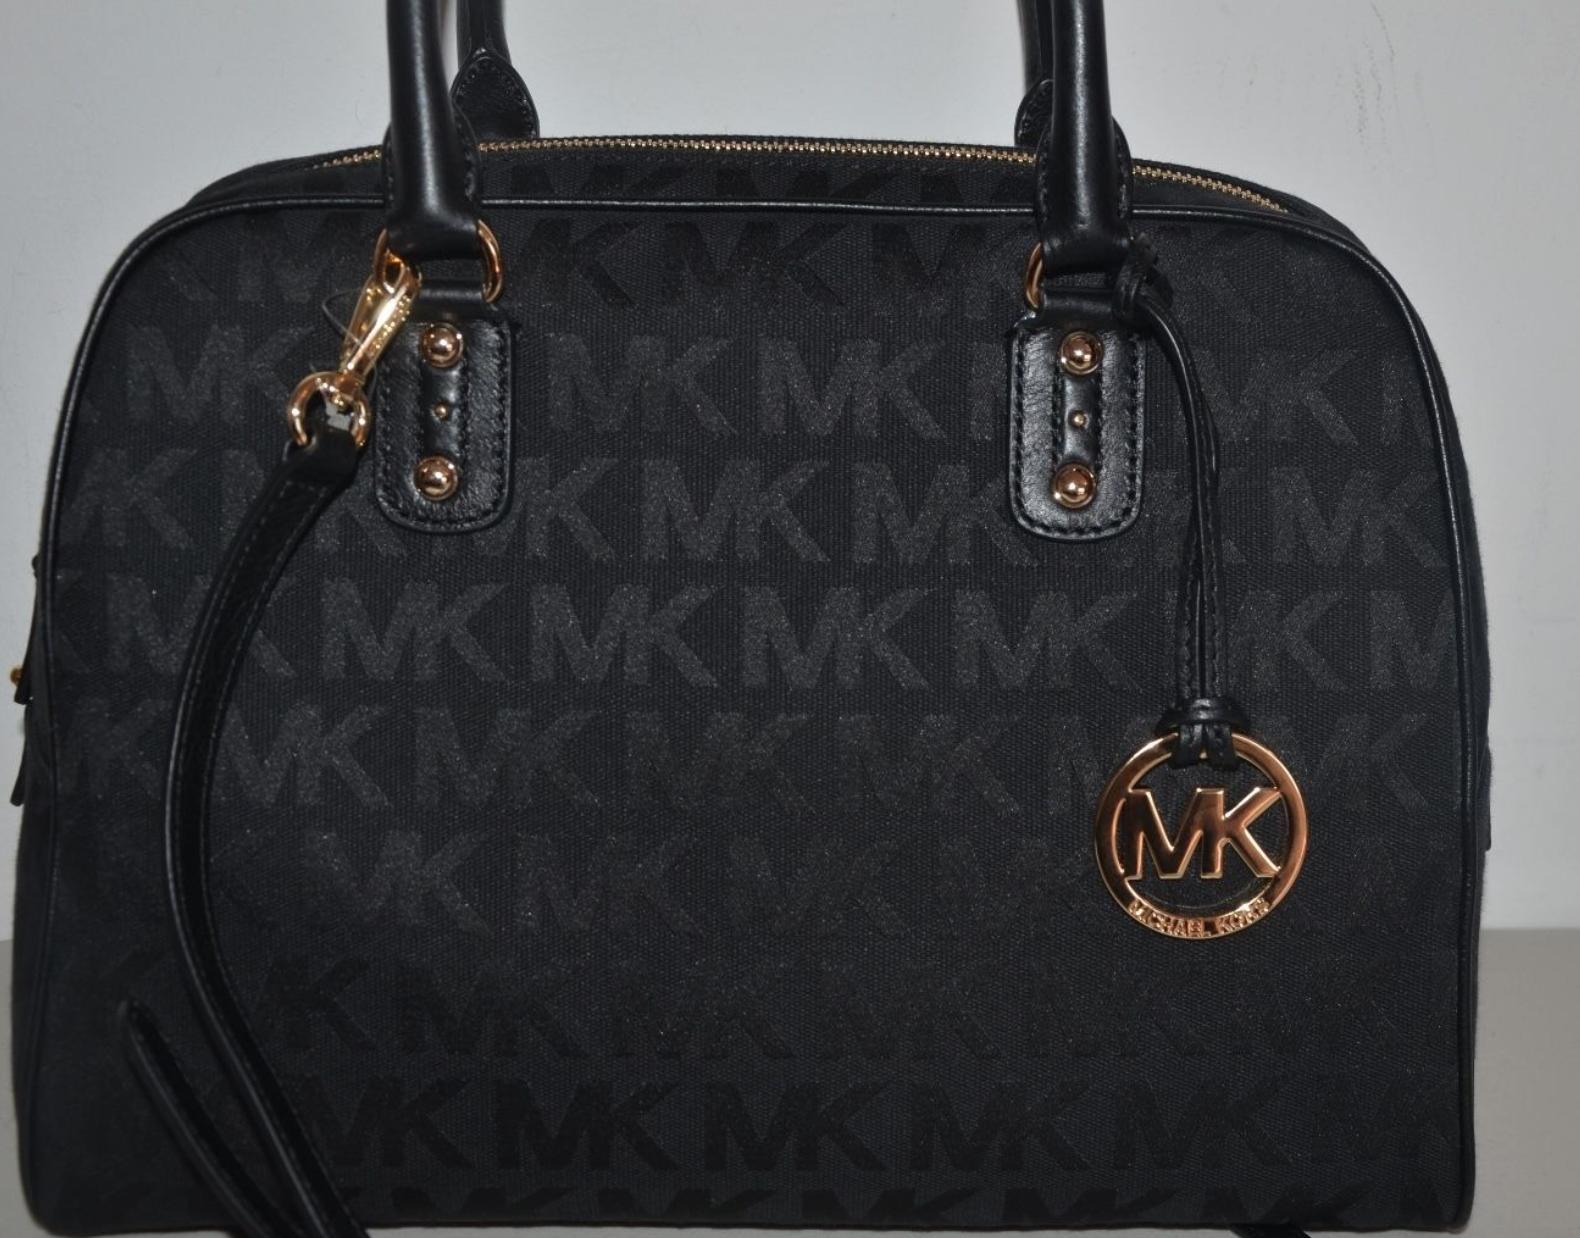 81535e9e5093 ... clearance michael kors mk signature shoulder purse tote black jacquard  leather satchel tradesy 9a17f b67e8